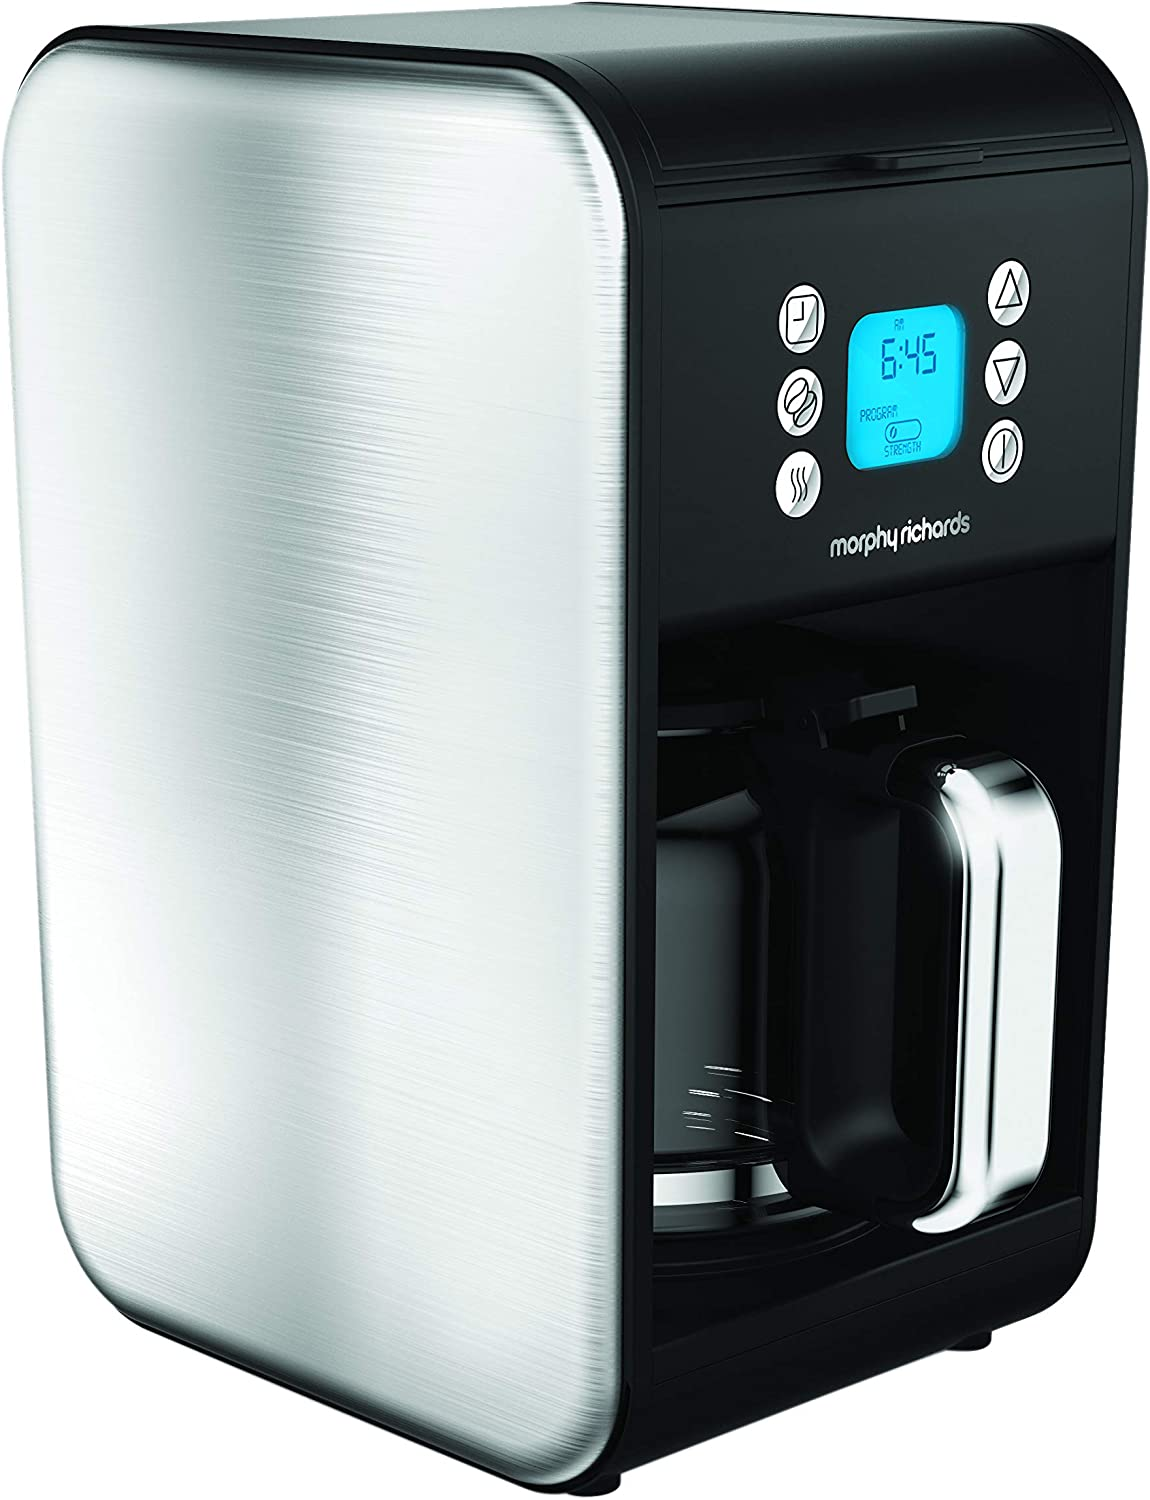 Morphy Richards 162010 Pour Over Filter Coffee Maker, 1.8 Litre, 900 W, Brushed Stainless Steel Morphy Richards Coffee Machine